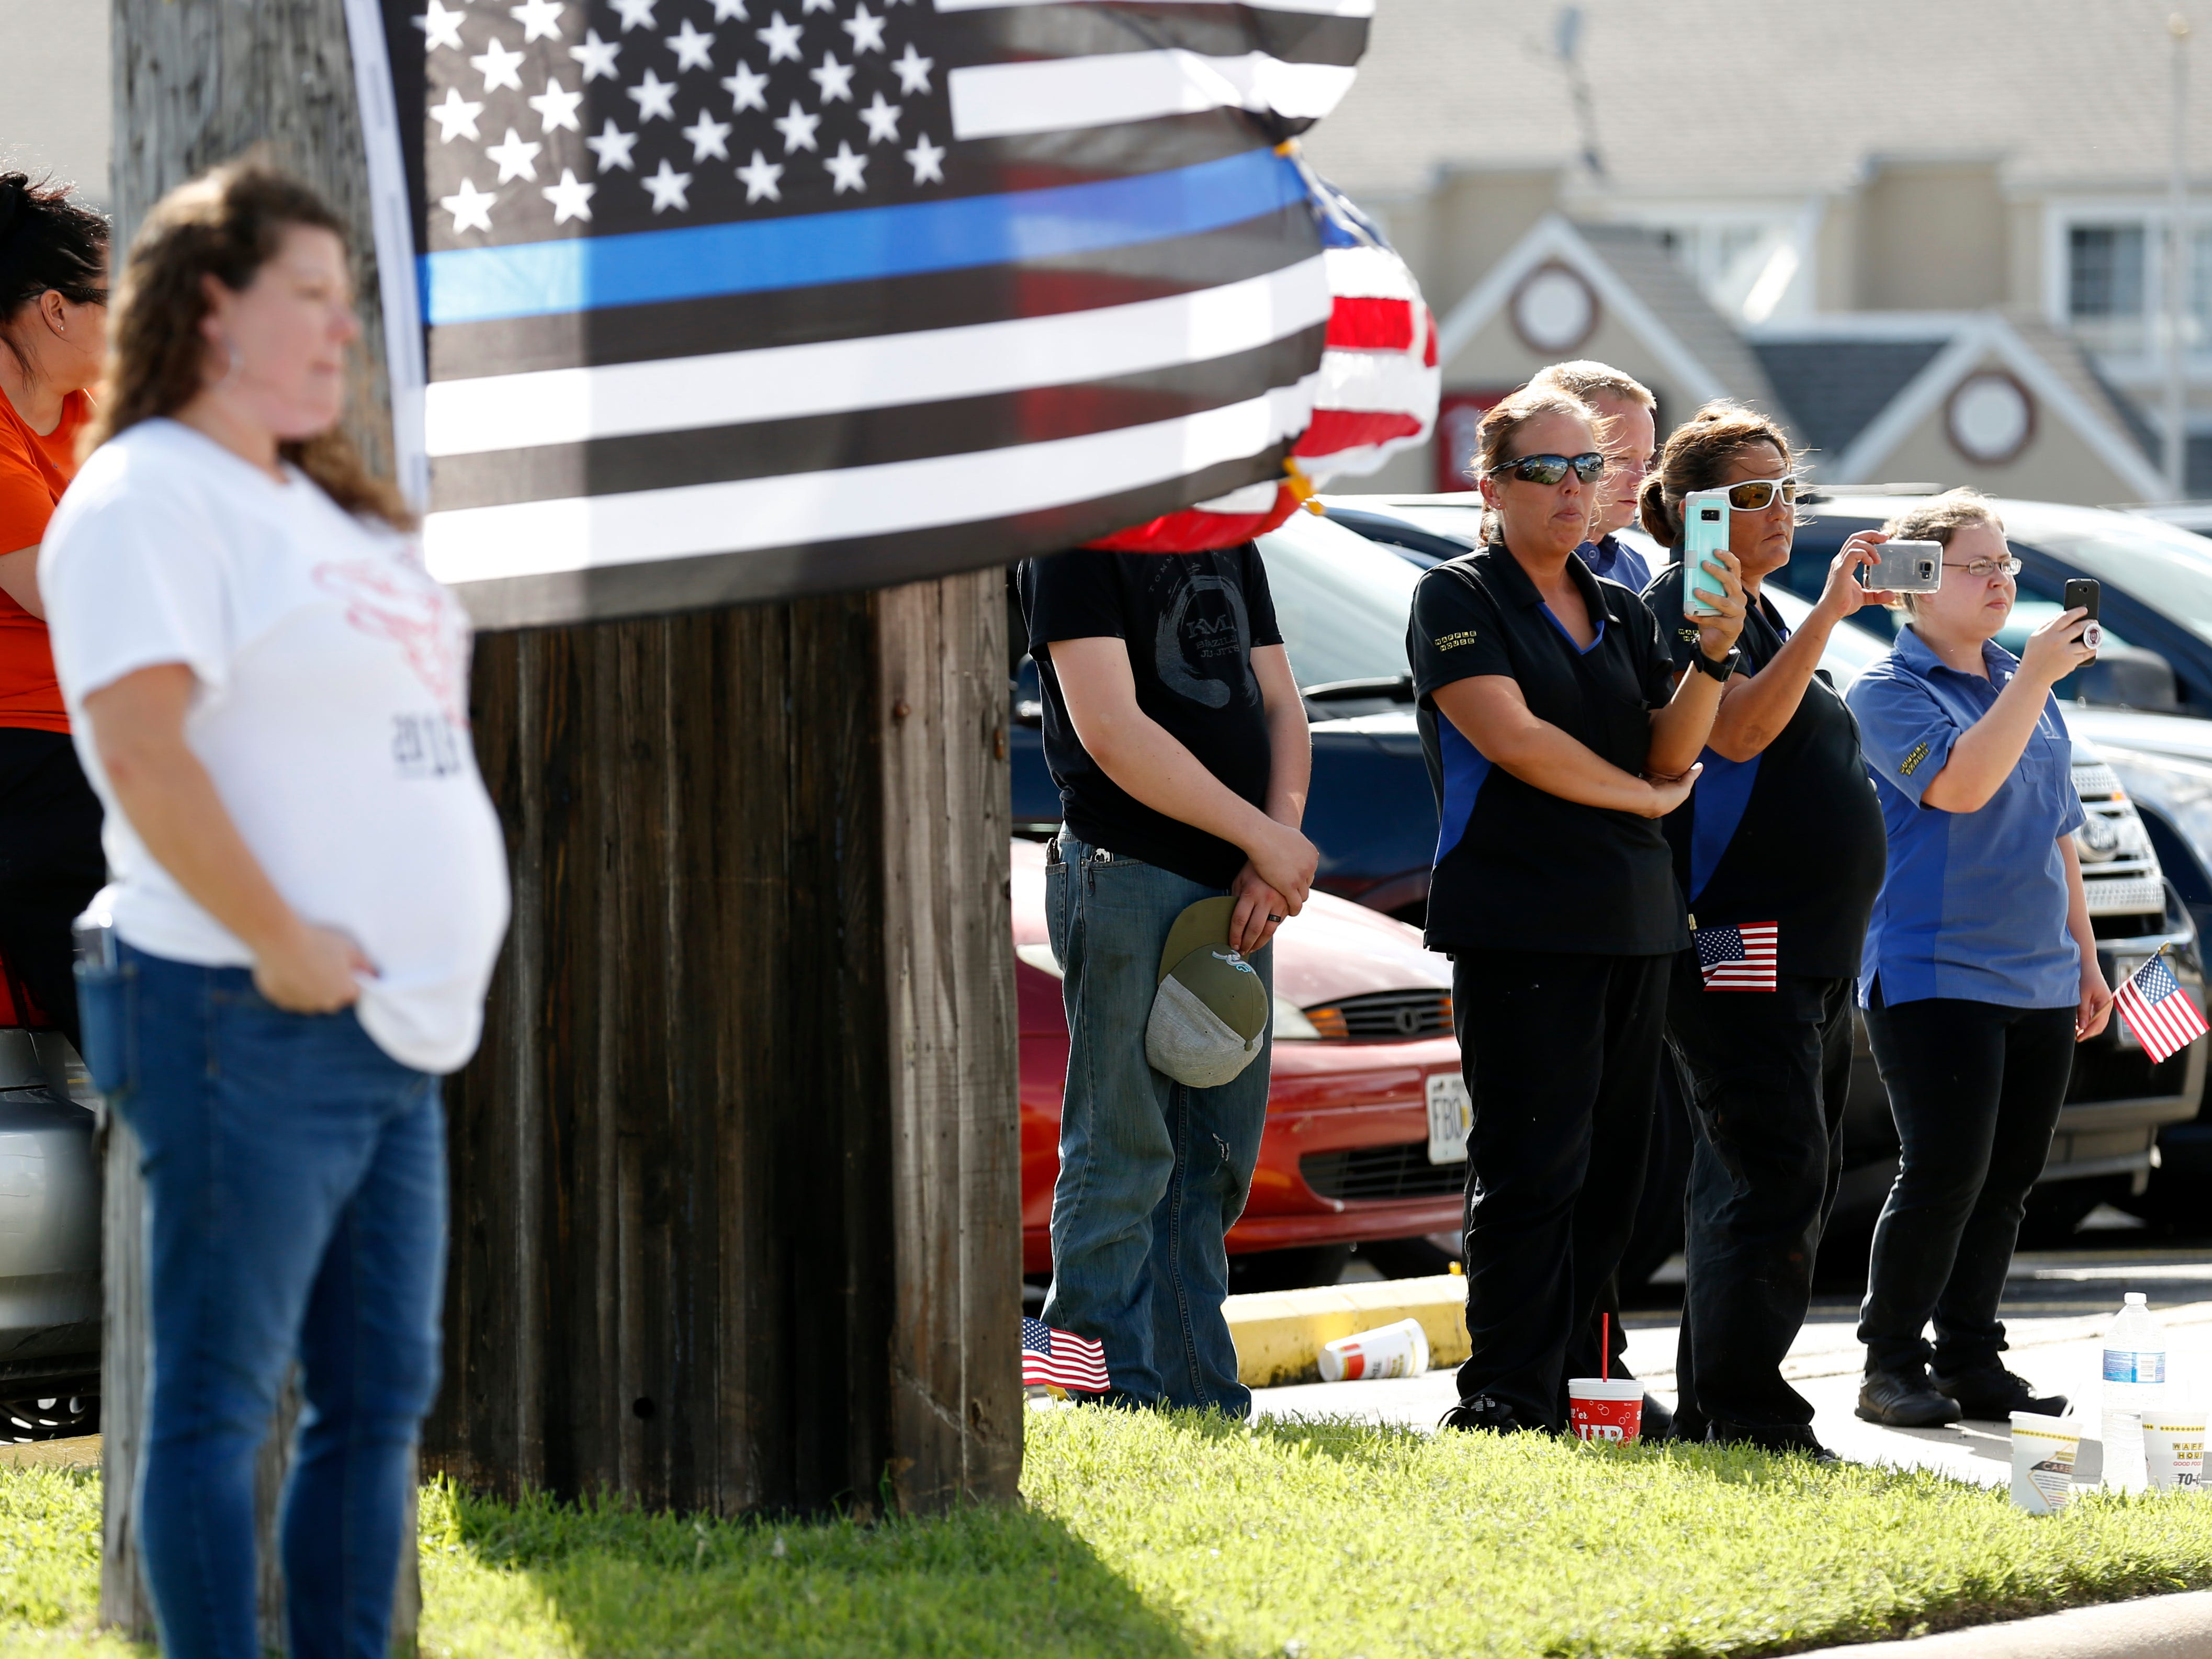 Supporters watch the funeral procession for Deputy Aaron Roberts as it passes by on Thursday, Sep. 13, 2018.